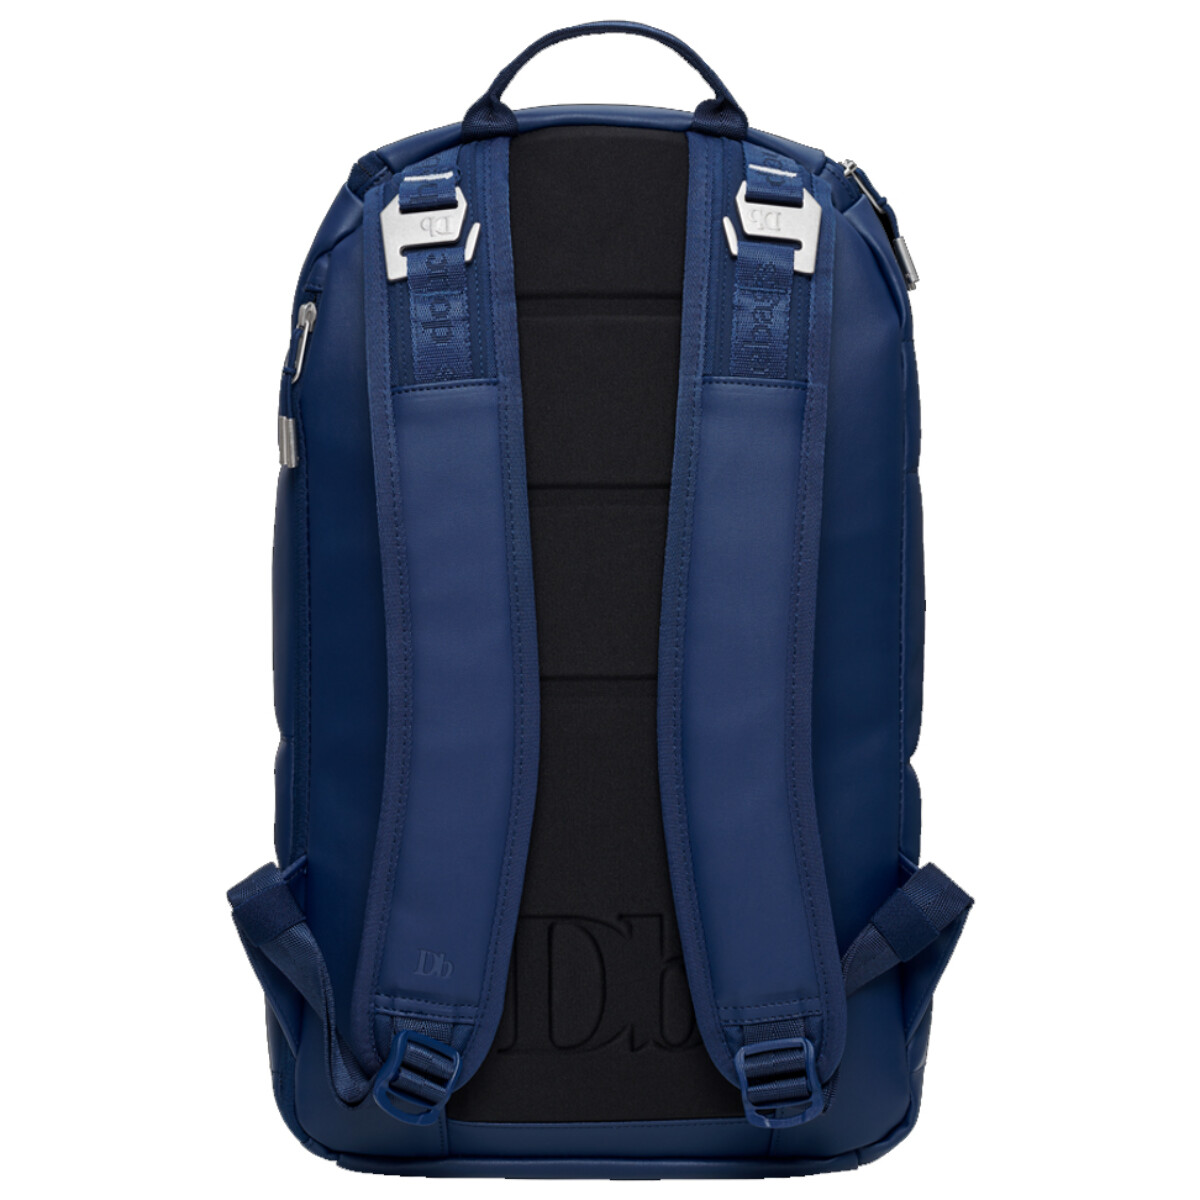 Db - The Backpack Blue